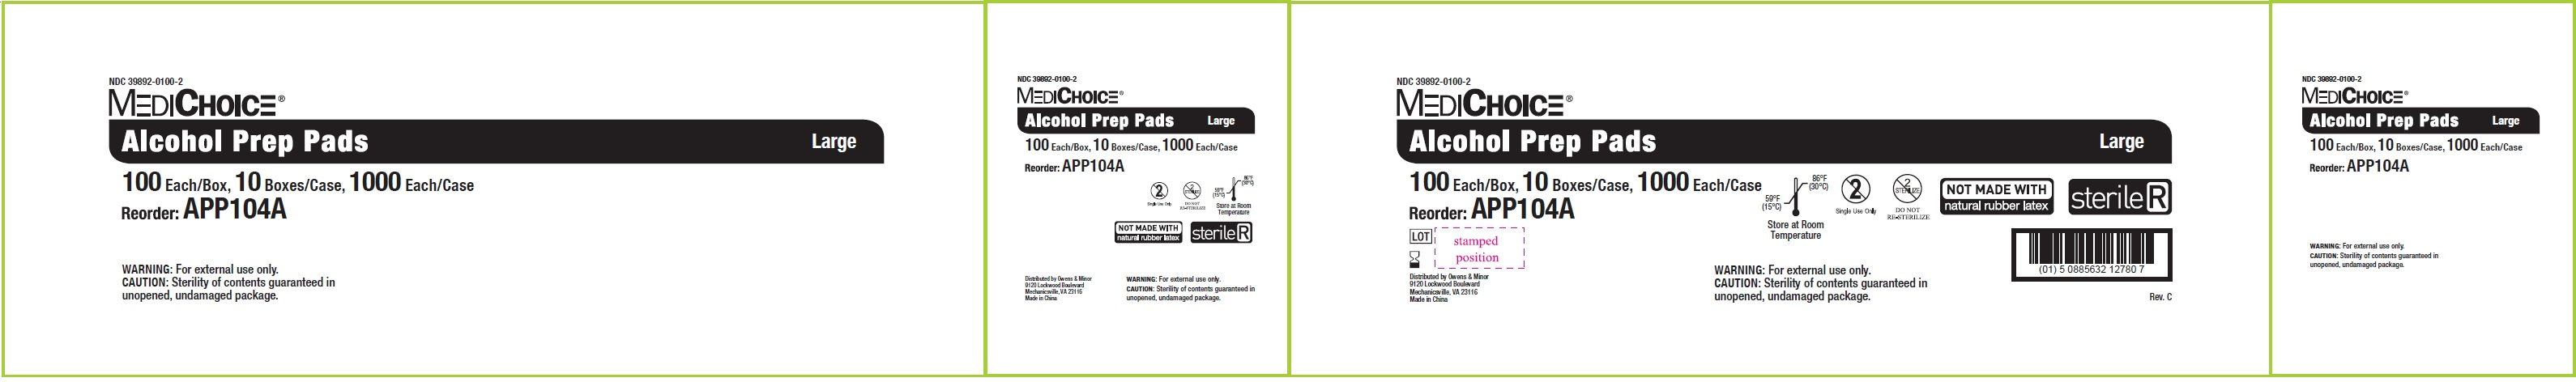 NDC - 39892-0100-2 - Alcohol Prep Pad - Box2